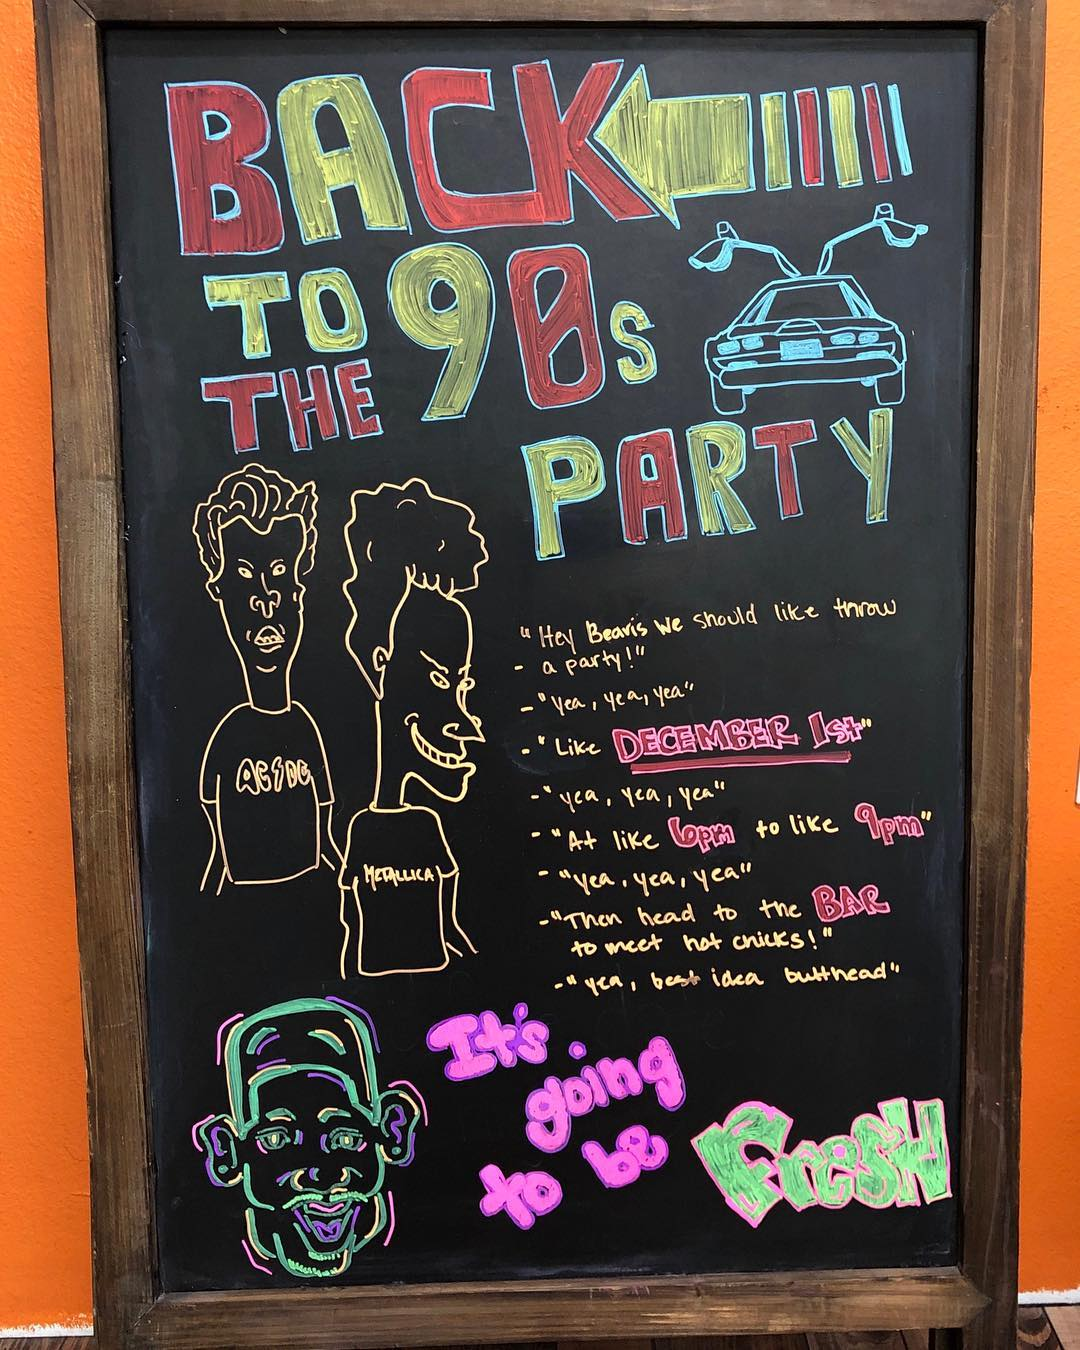 """HAC Christmas Party this Saturday from 6-9pm! Beer and wine will be provided, and @fonzis_tacos will be parked out front for good eats!! This years them is """"Back to the 90's"""" so where your best 90s version of fashion! We'll party at the box for a few hours then head over to @ninosplace209 around 9ish to watch @mintiki and rock the house! It's gonna be totally awesome"""